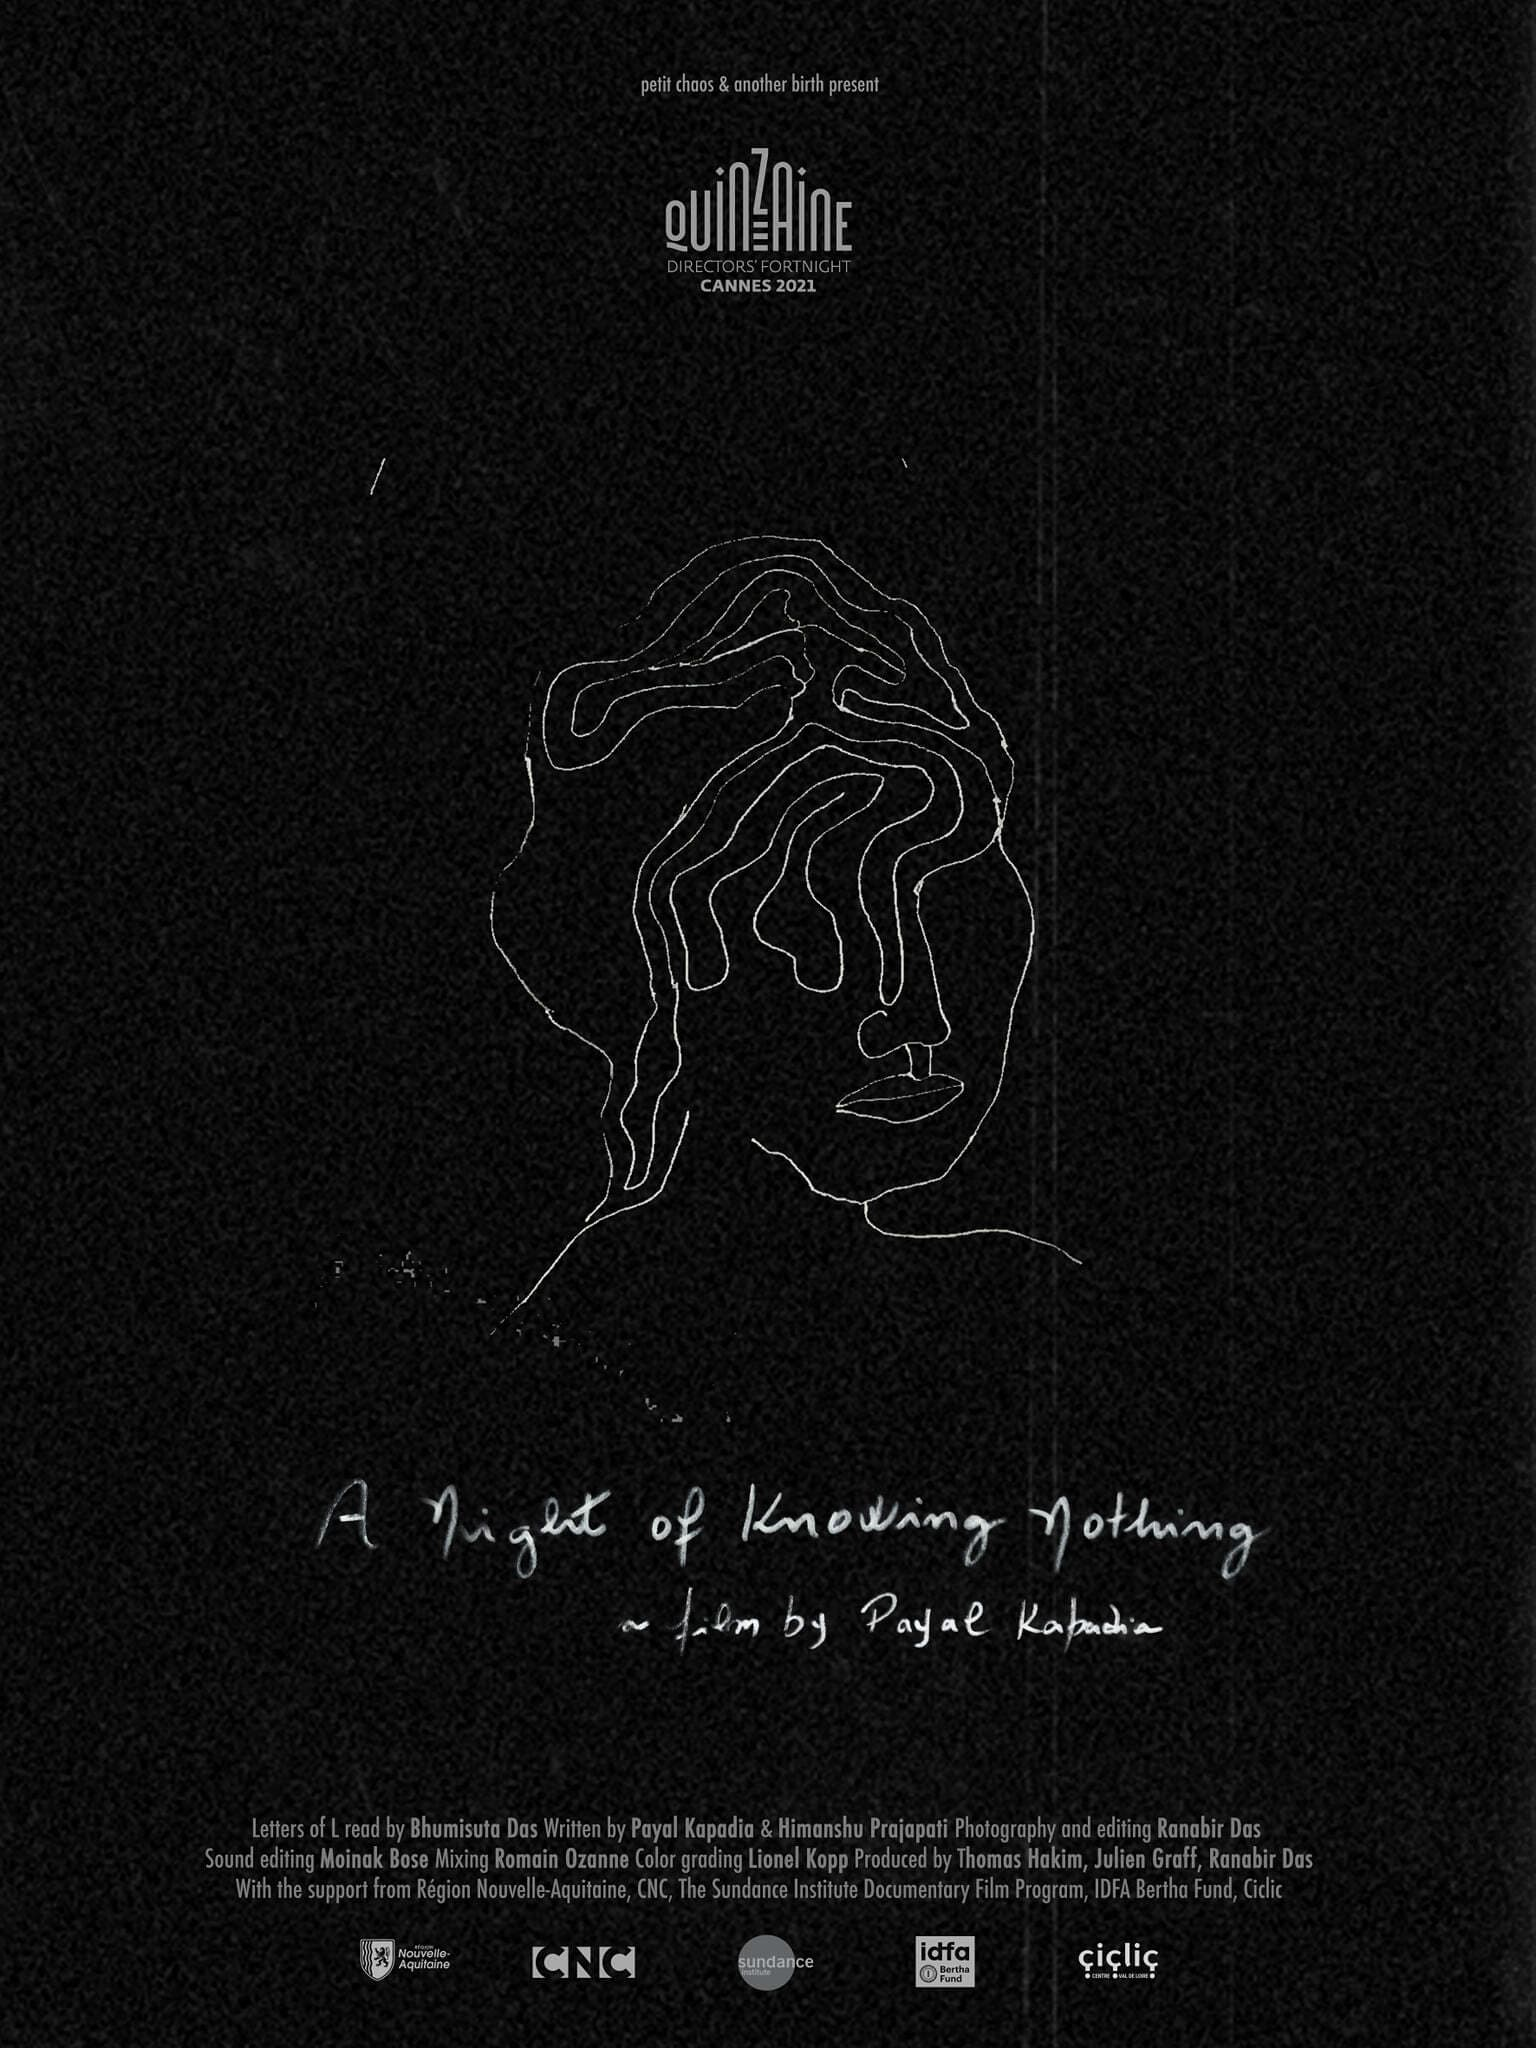 A Night of Knowing Nothing (2021)